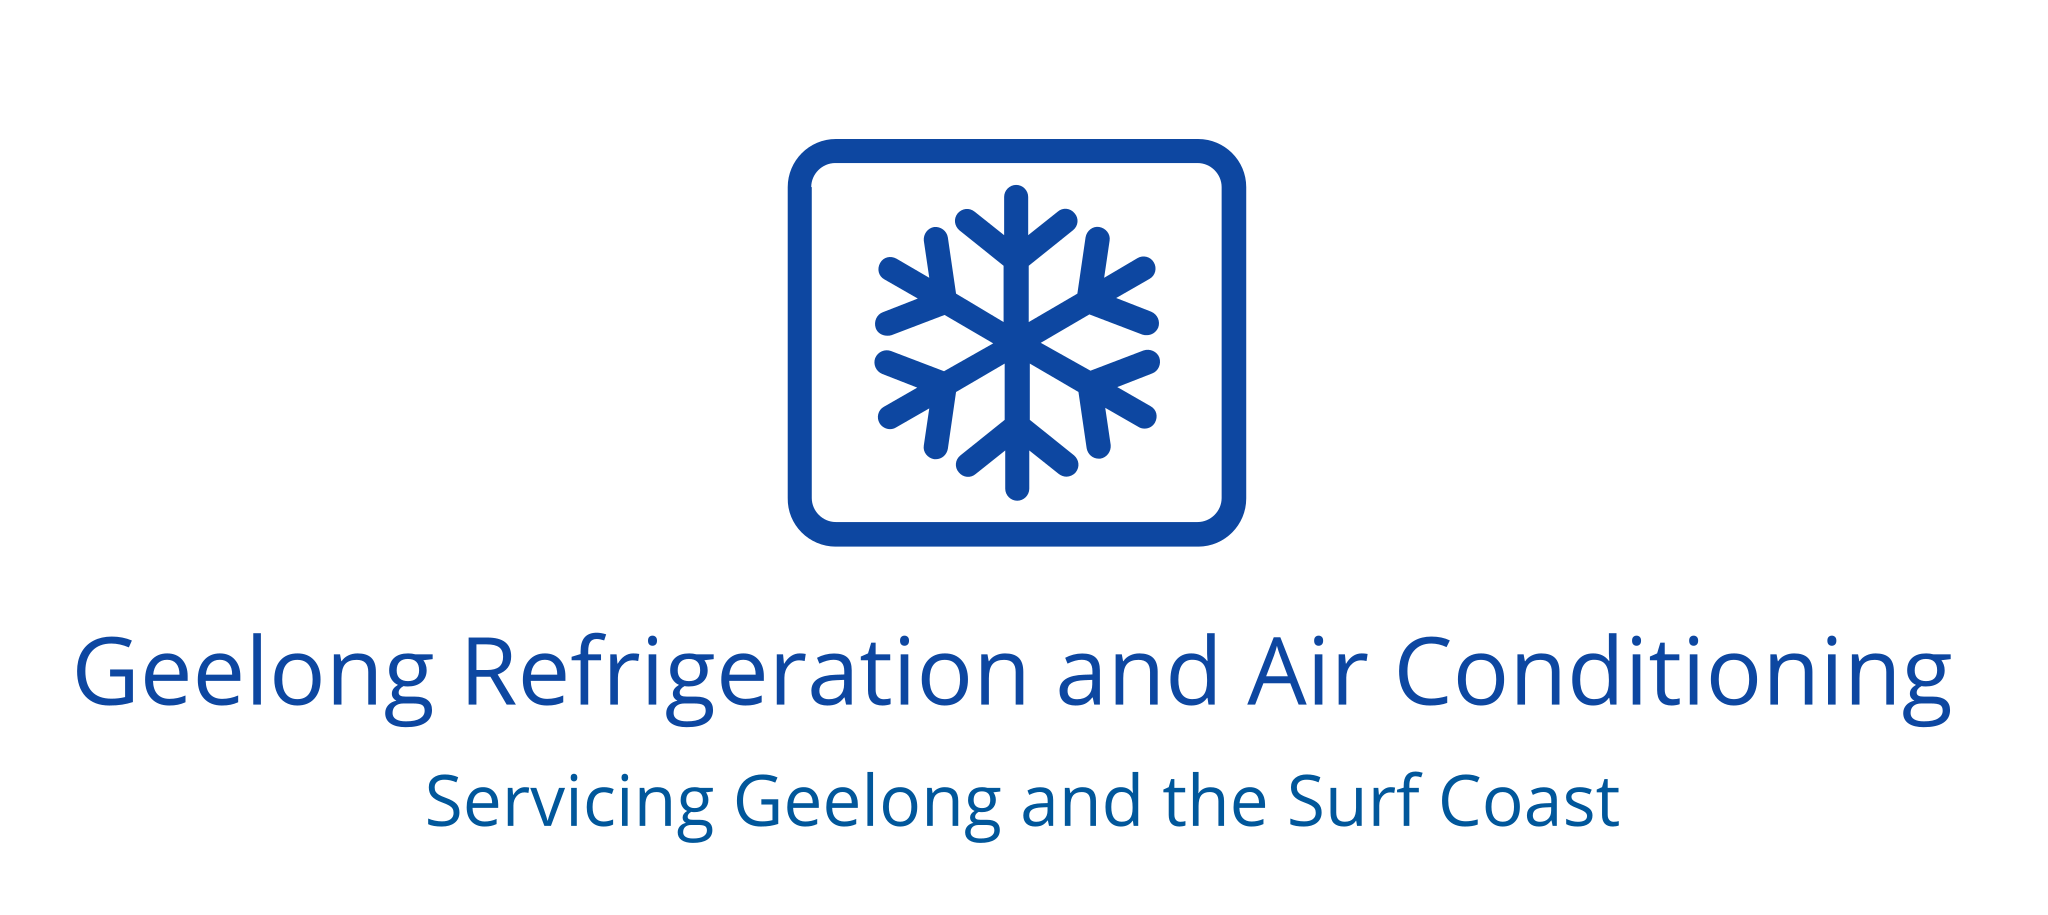 Geelong Refrigeration and Air Conditioning